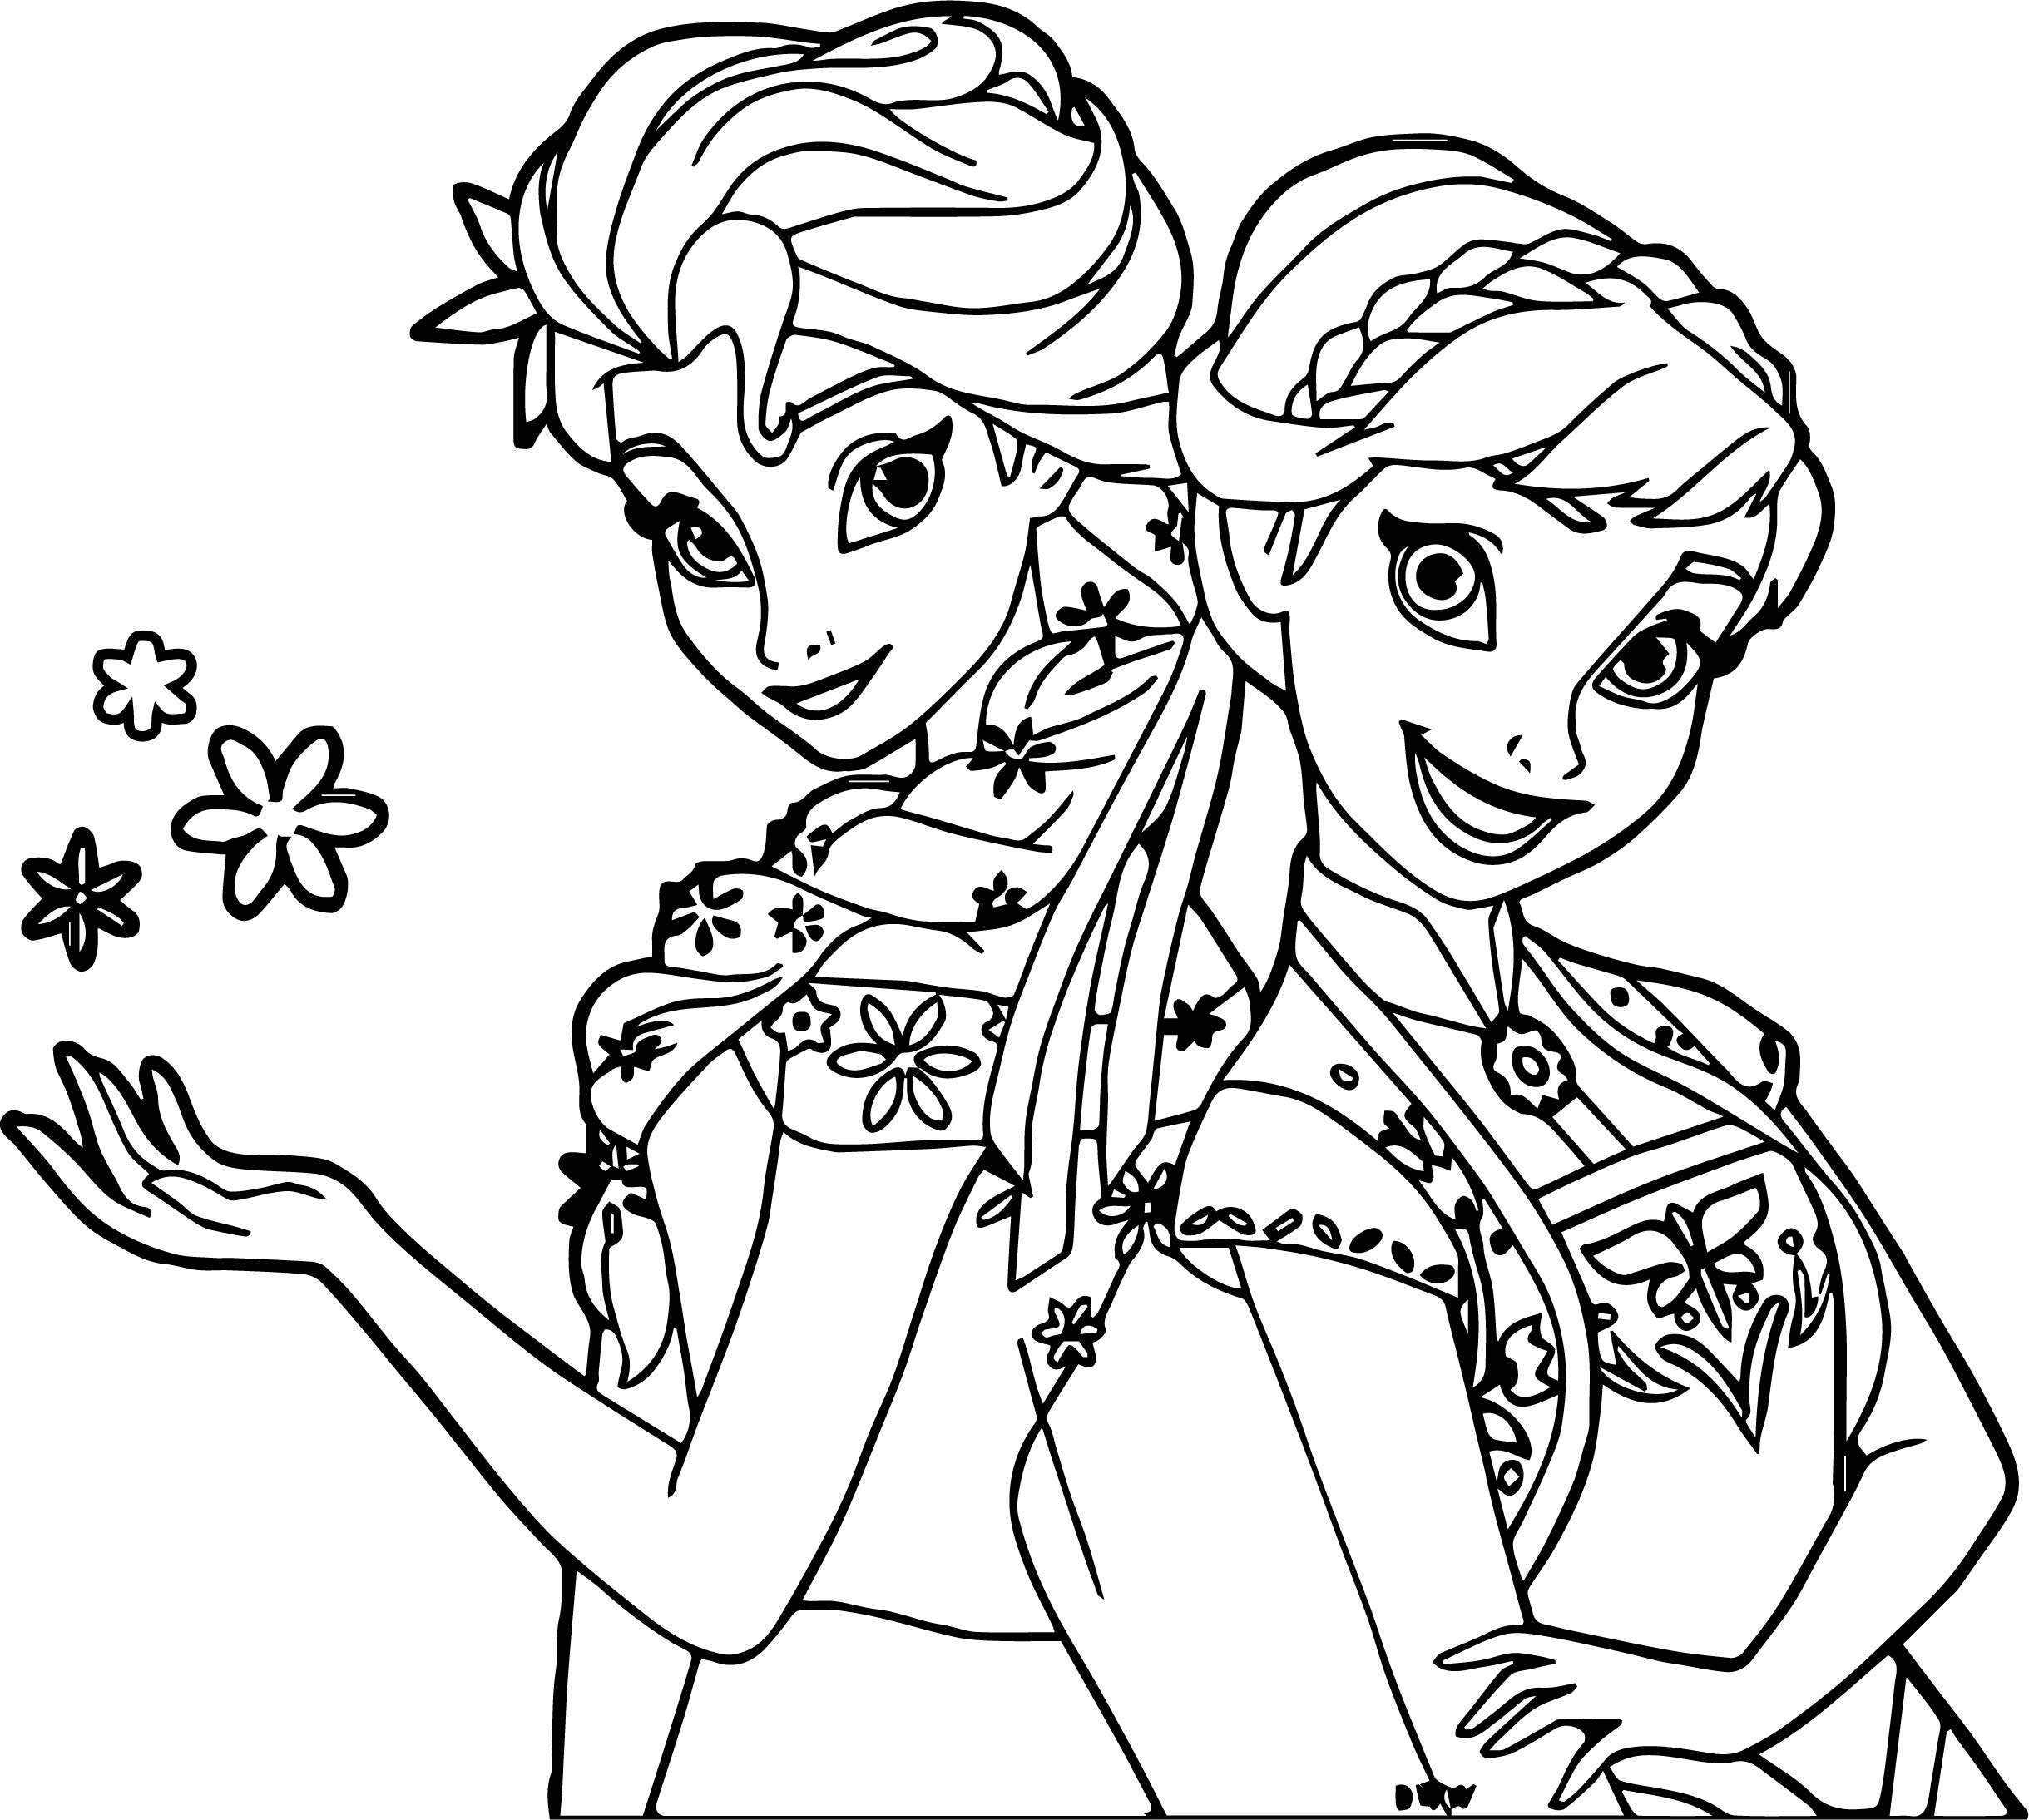 frozen fever coloring pages - frozen fever anna snow coloring page